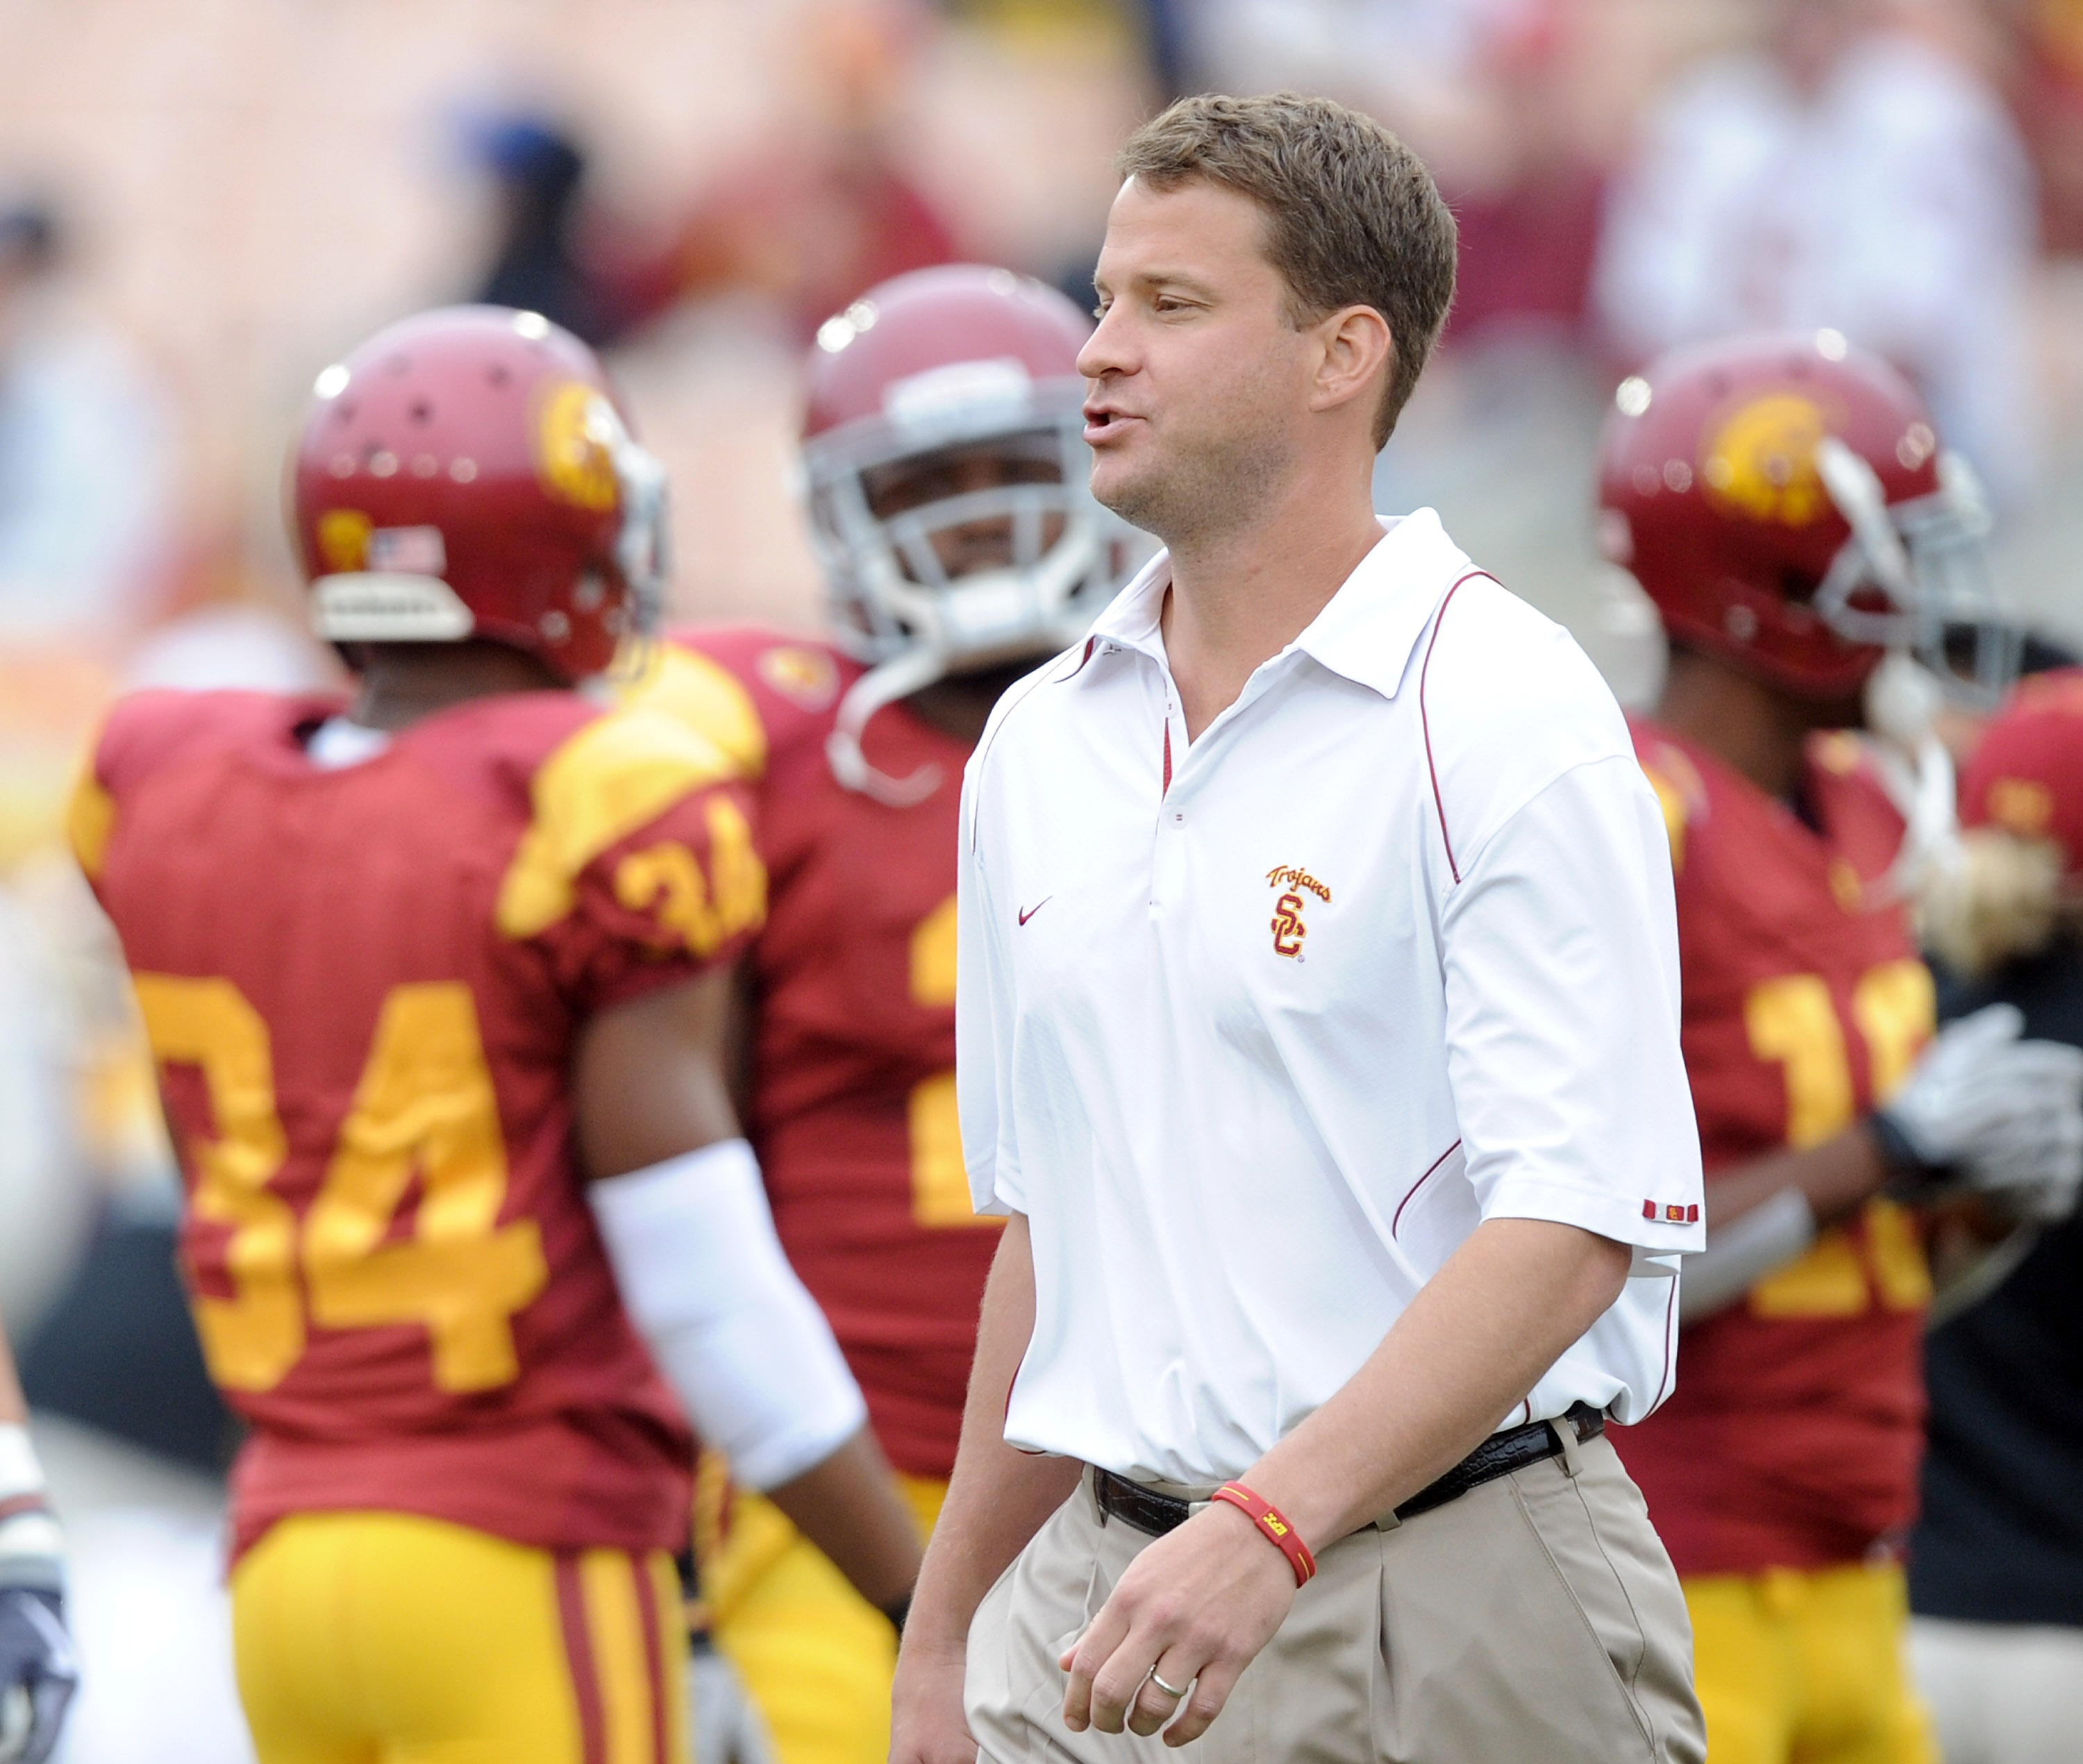 LOS ANGELES, CA - OCTOBER 16:  Head Coach Lane Kiffin of the USC Trojans during warm up against the California Golden Bears at Los Angeles Memorial Coliseum on October 16, 2010 in Los Angeles, California.  (Photo by Harry How/Getty Images)